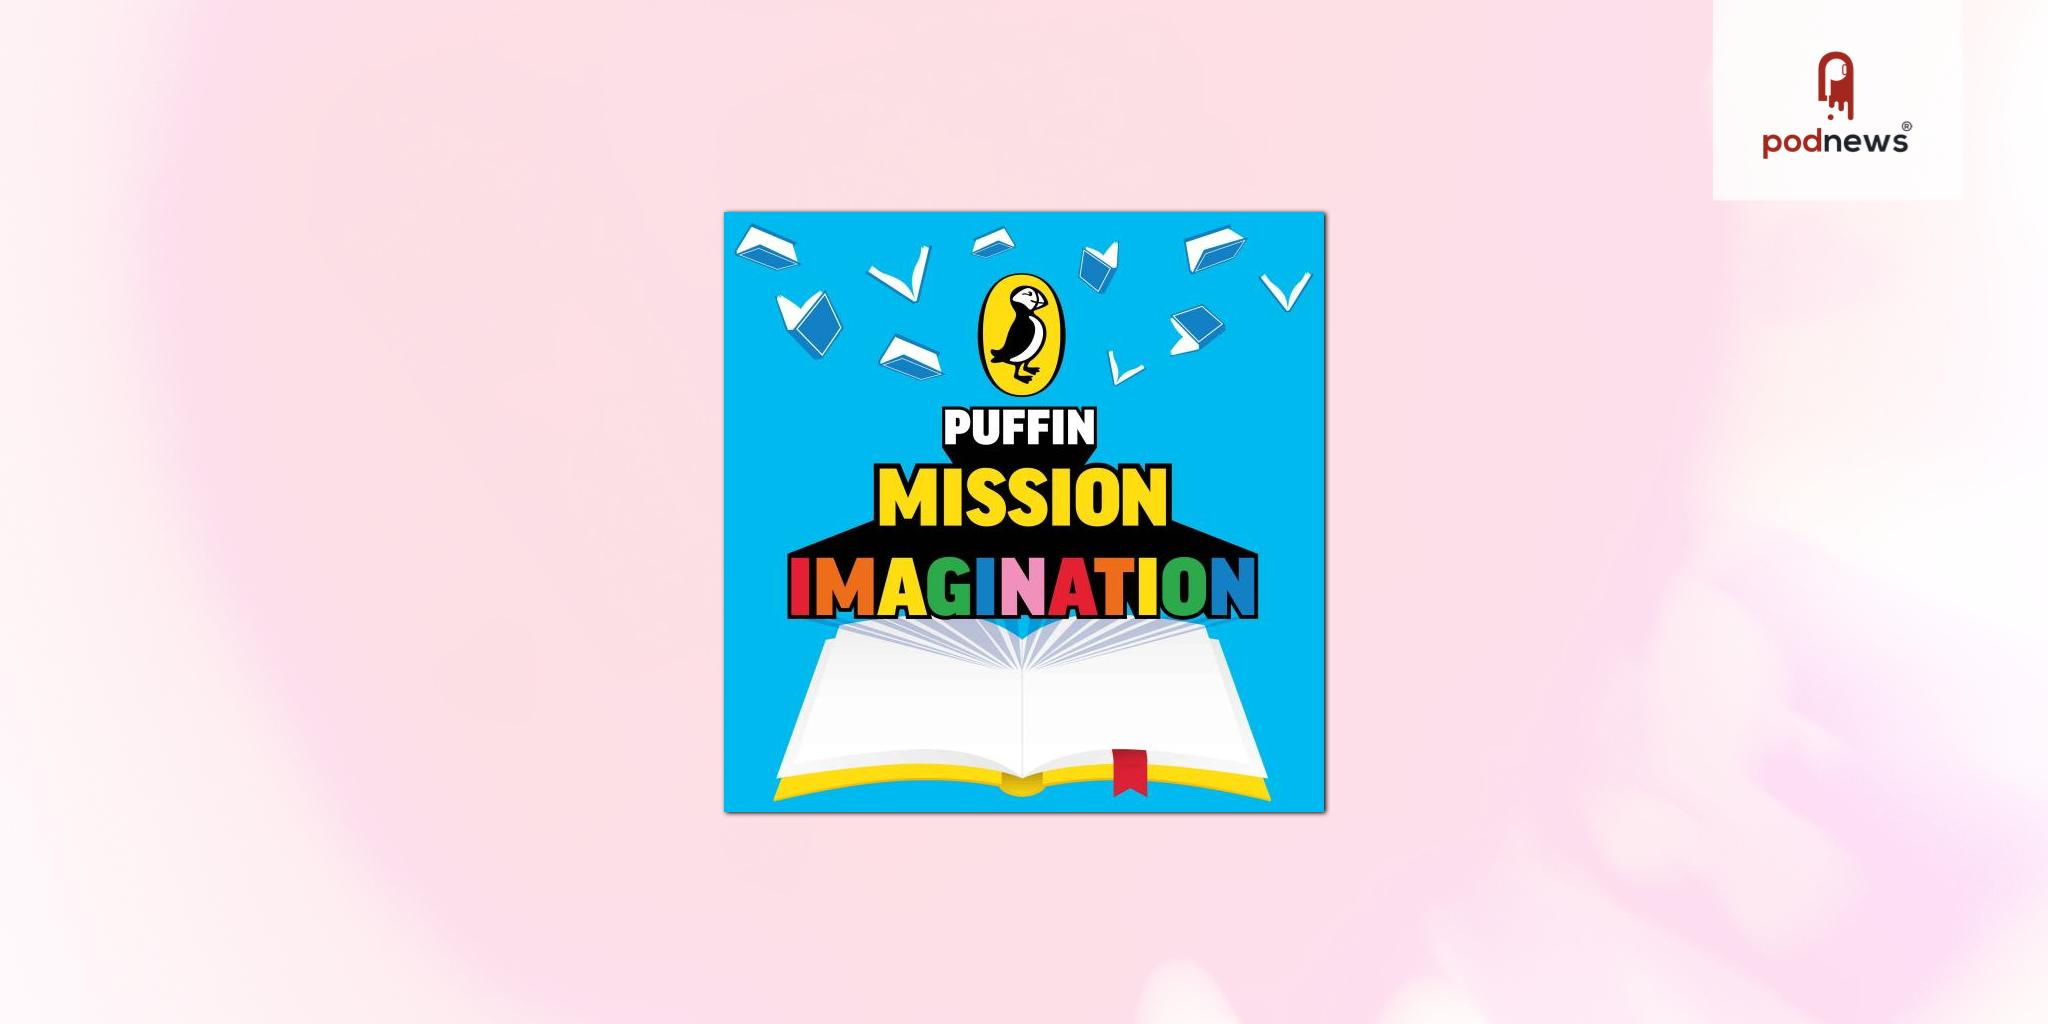 Puffin Podcast 'Mission Imagination' launched, hosted by multi award winning comedian Babatunde Aléshé